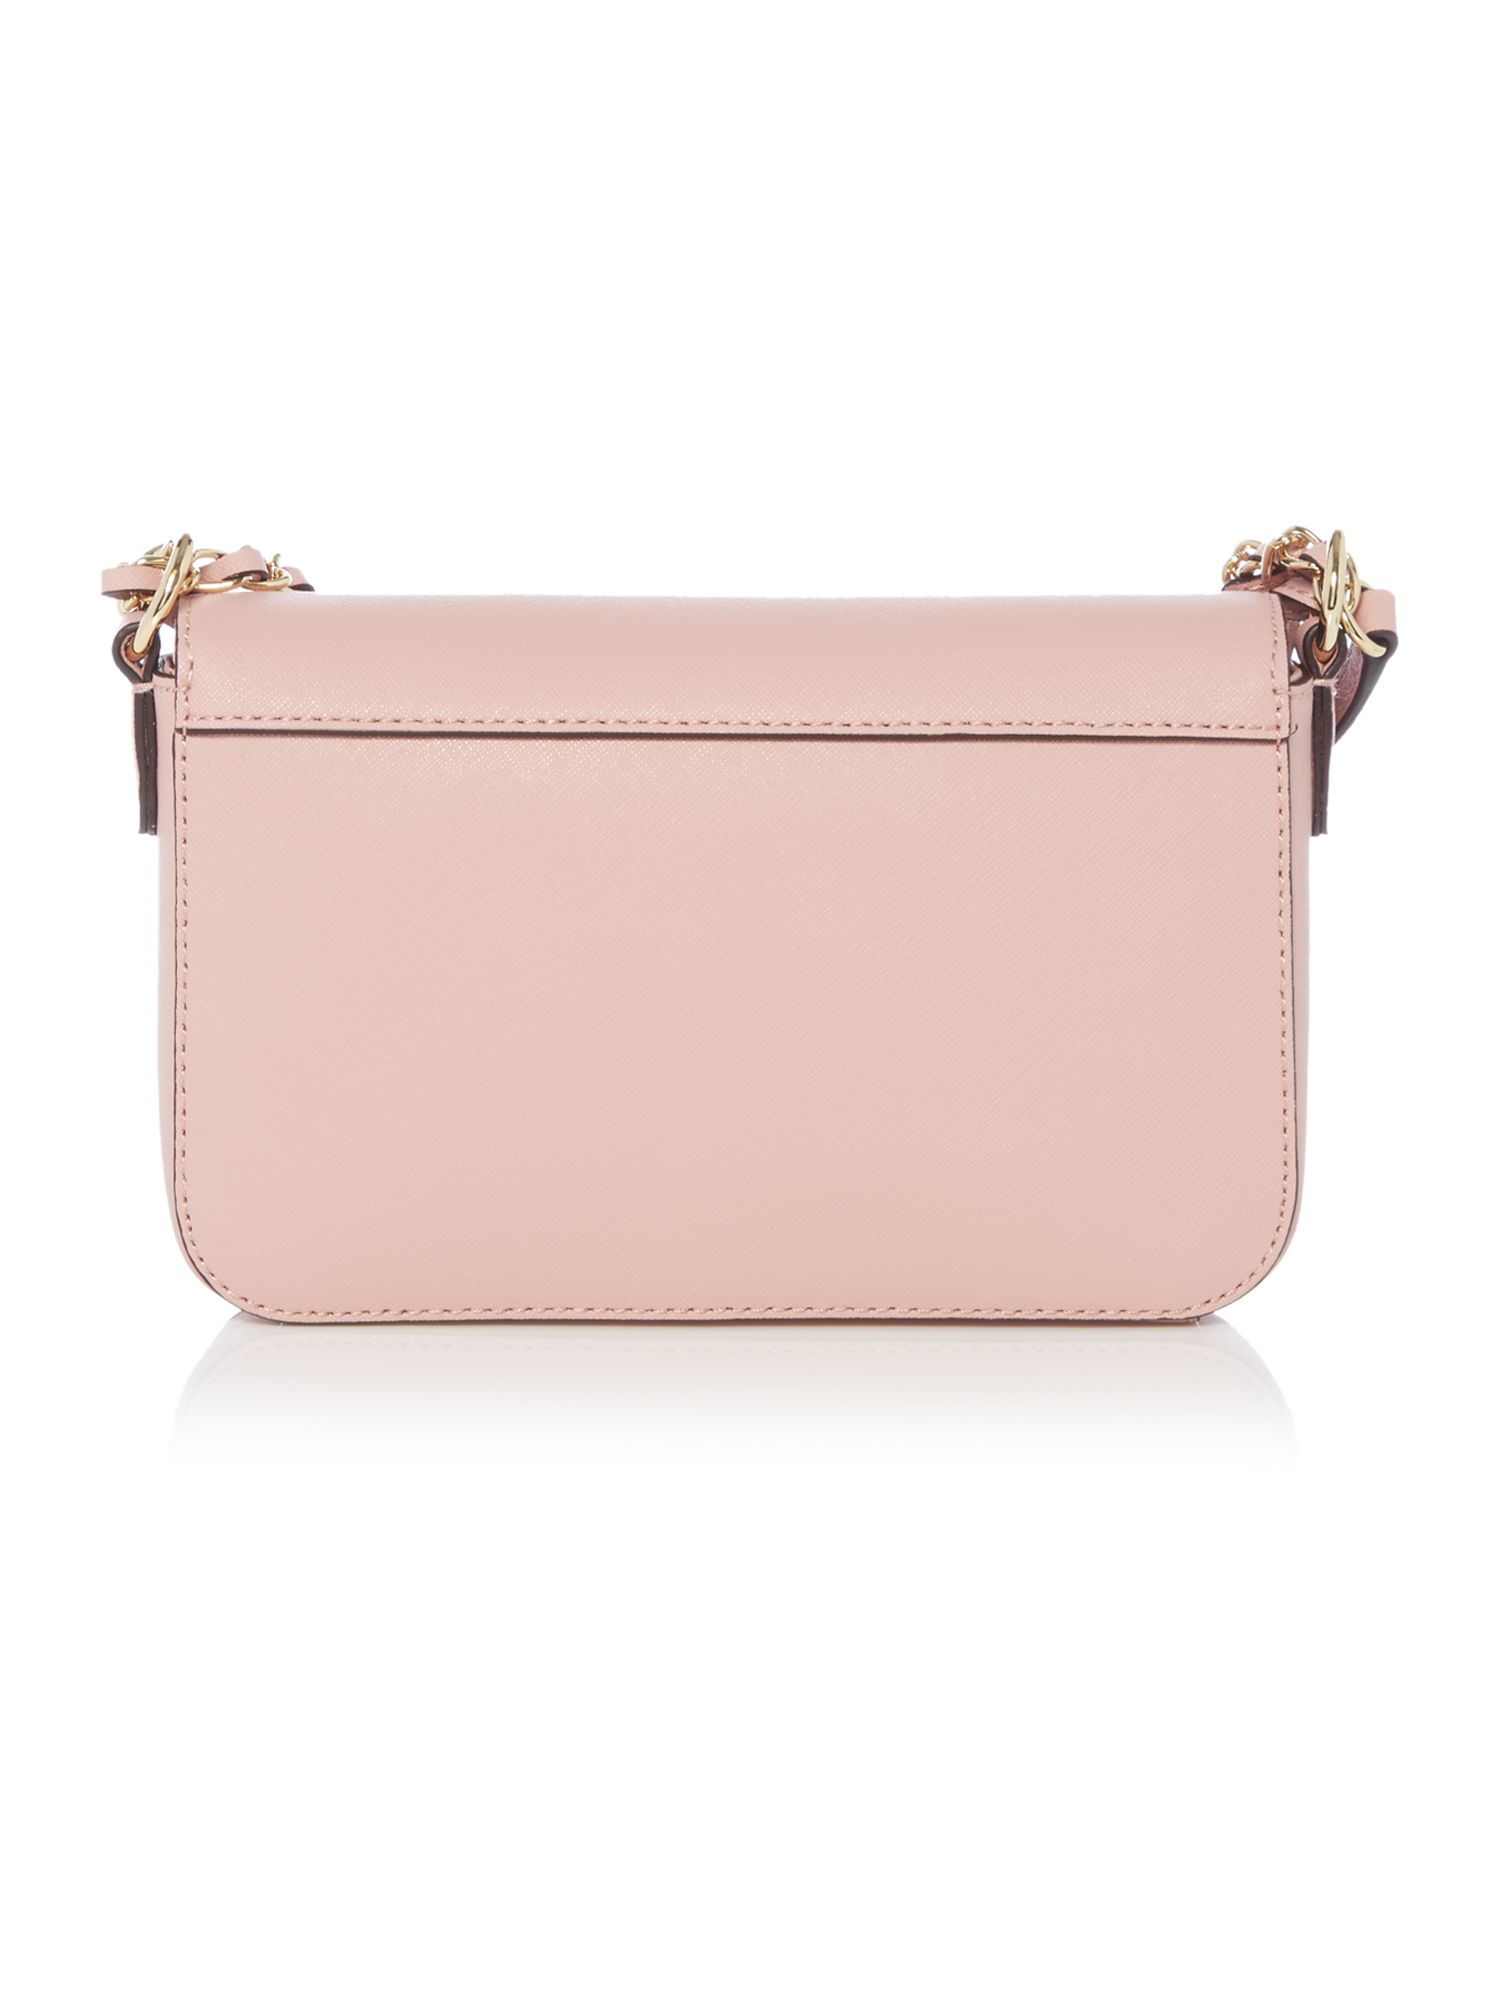 dkny saffiano light pink small flap crossbody bag in